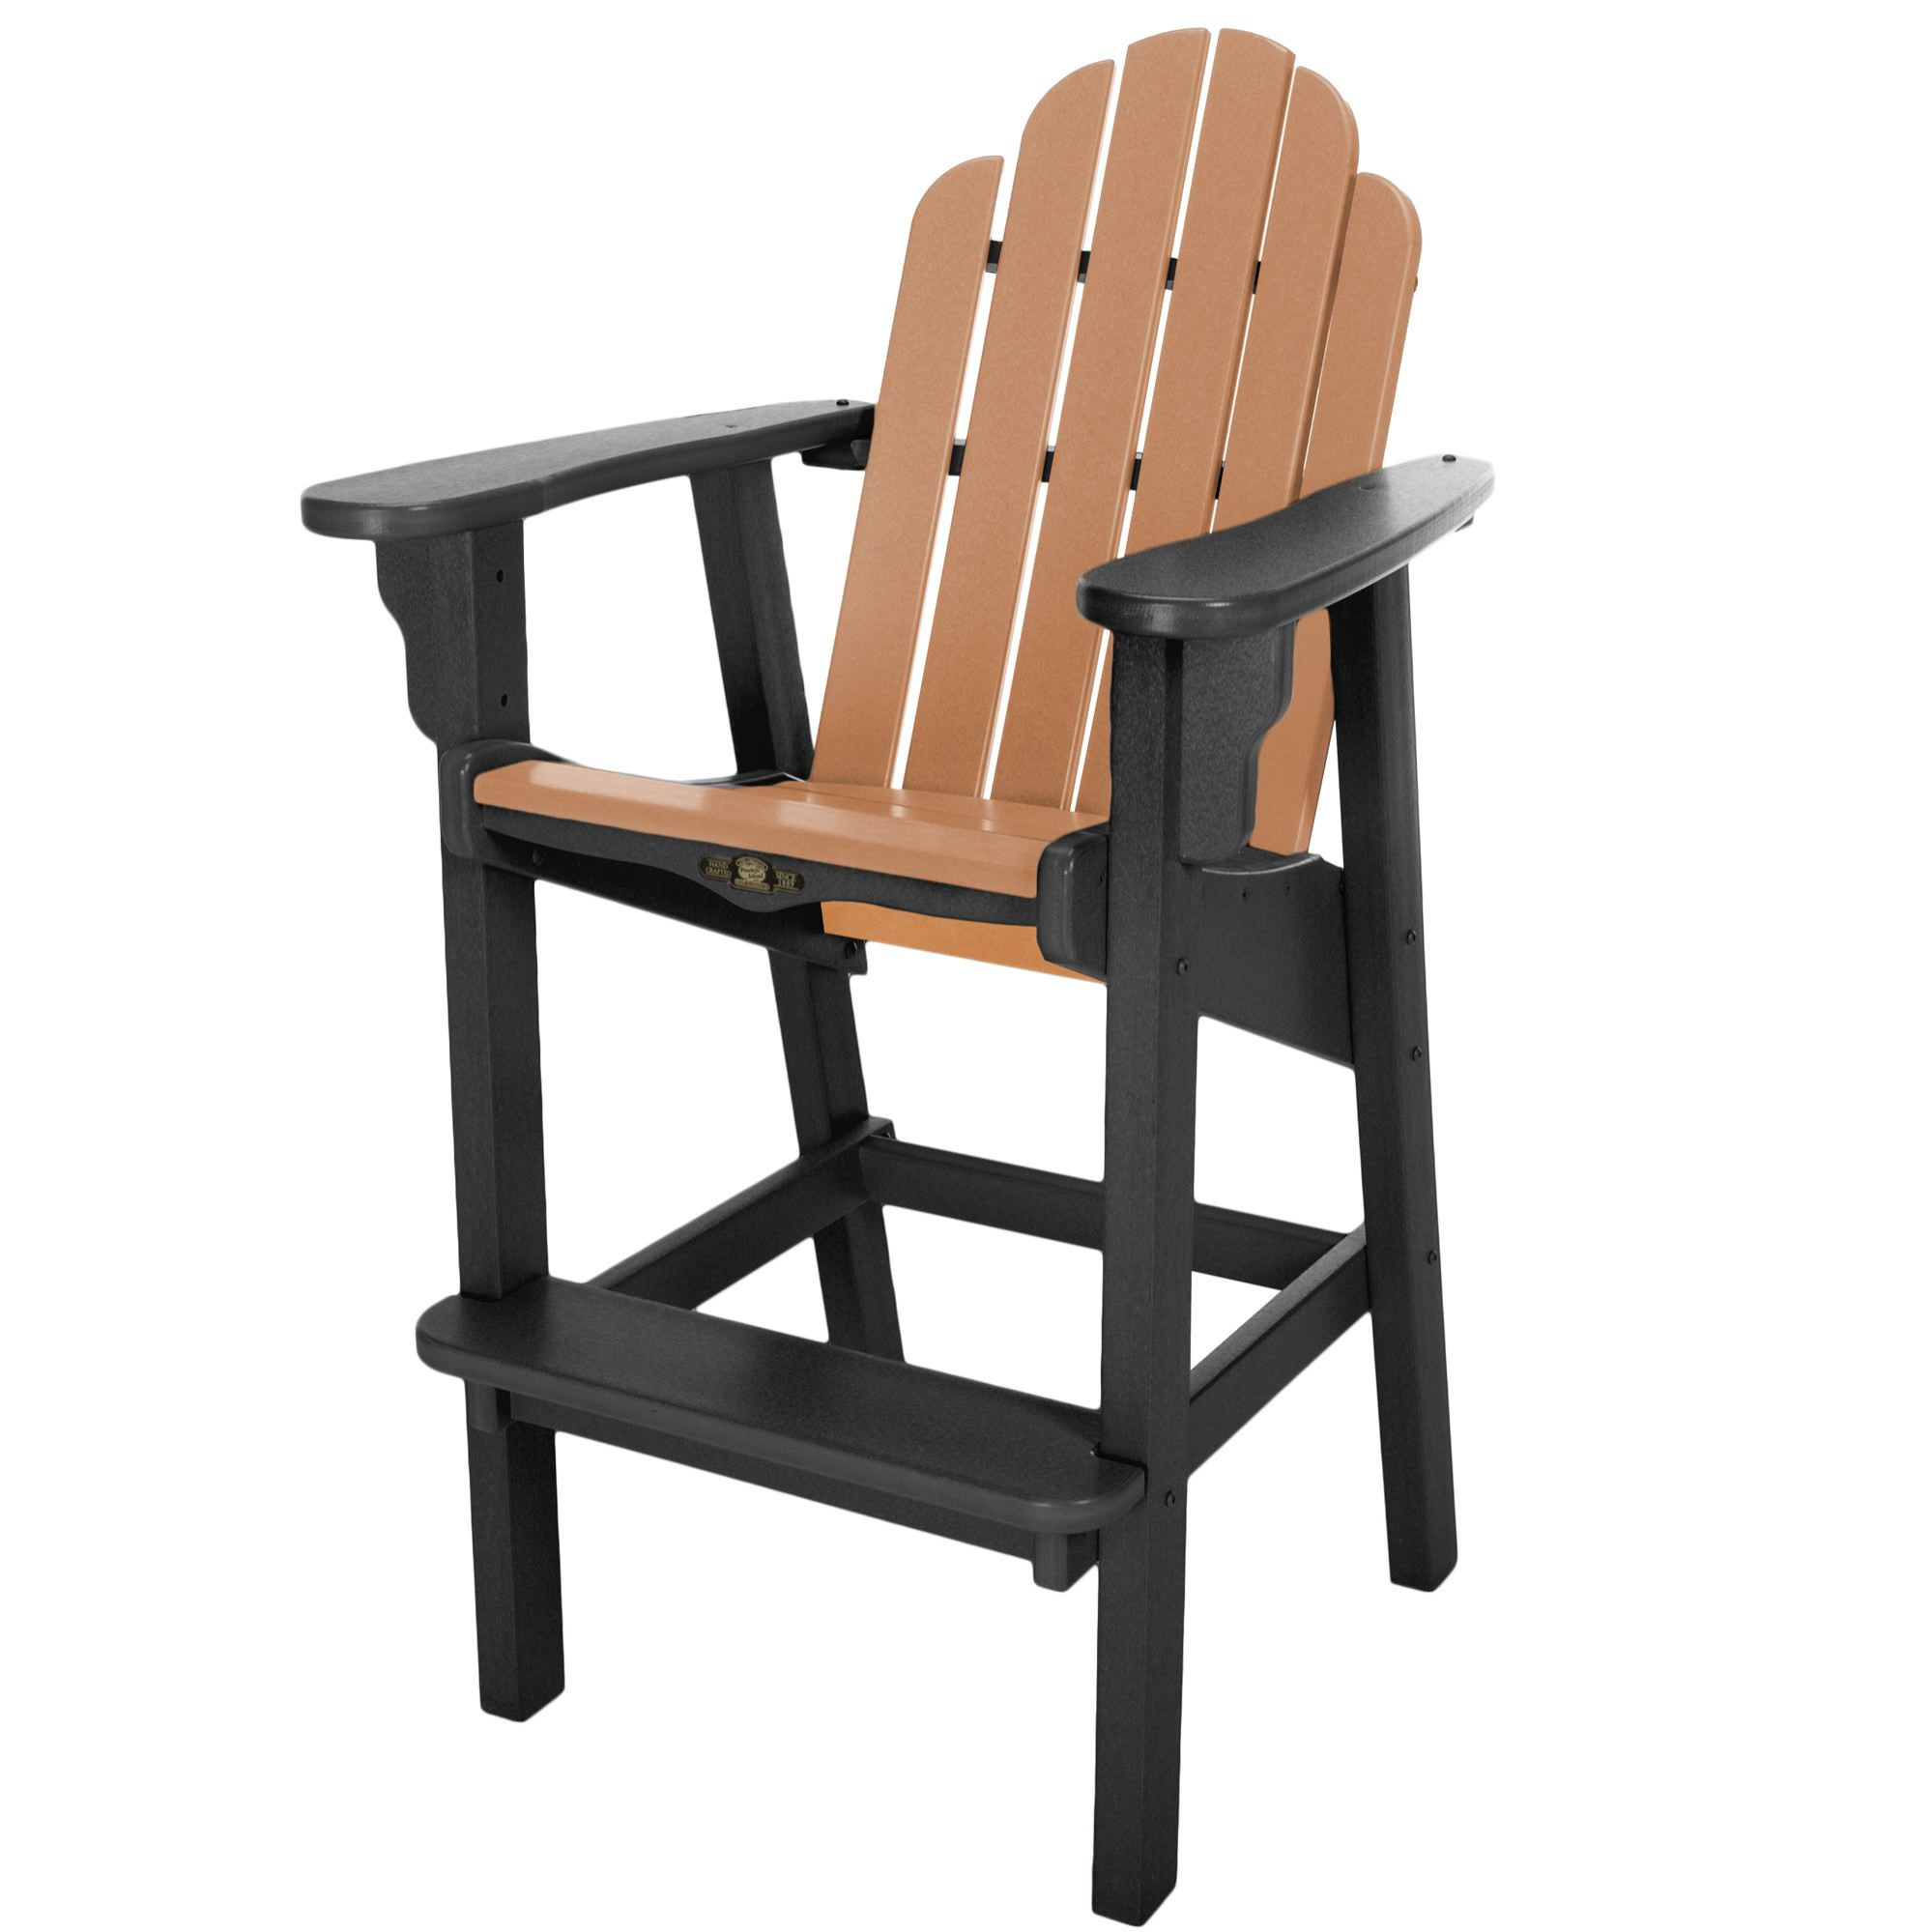 Shop Durawood Counter Height Dining Chairs on Sale